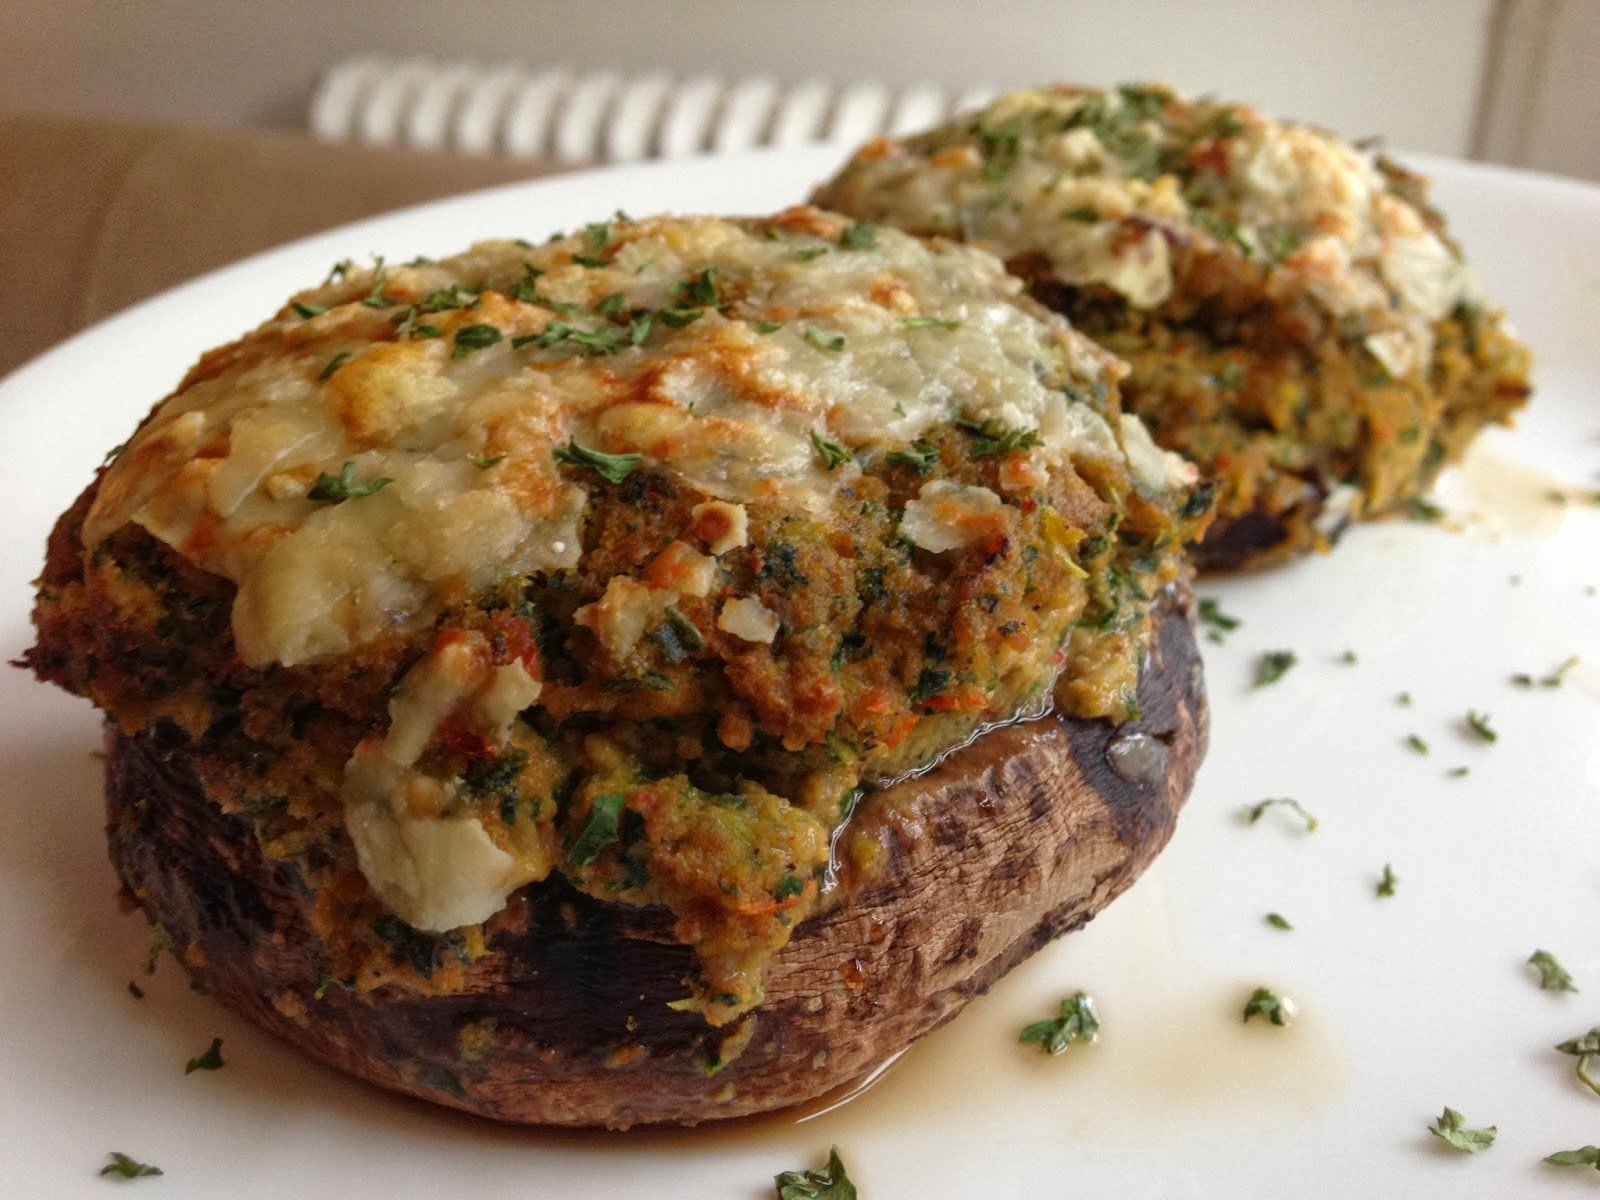 Worthy Pause Paleo Food Blog: Paleo Stuffed Portabella Mushrooms Recipe